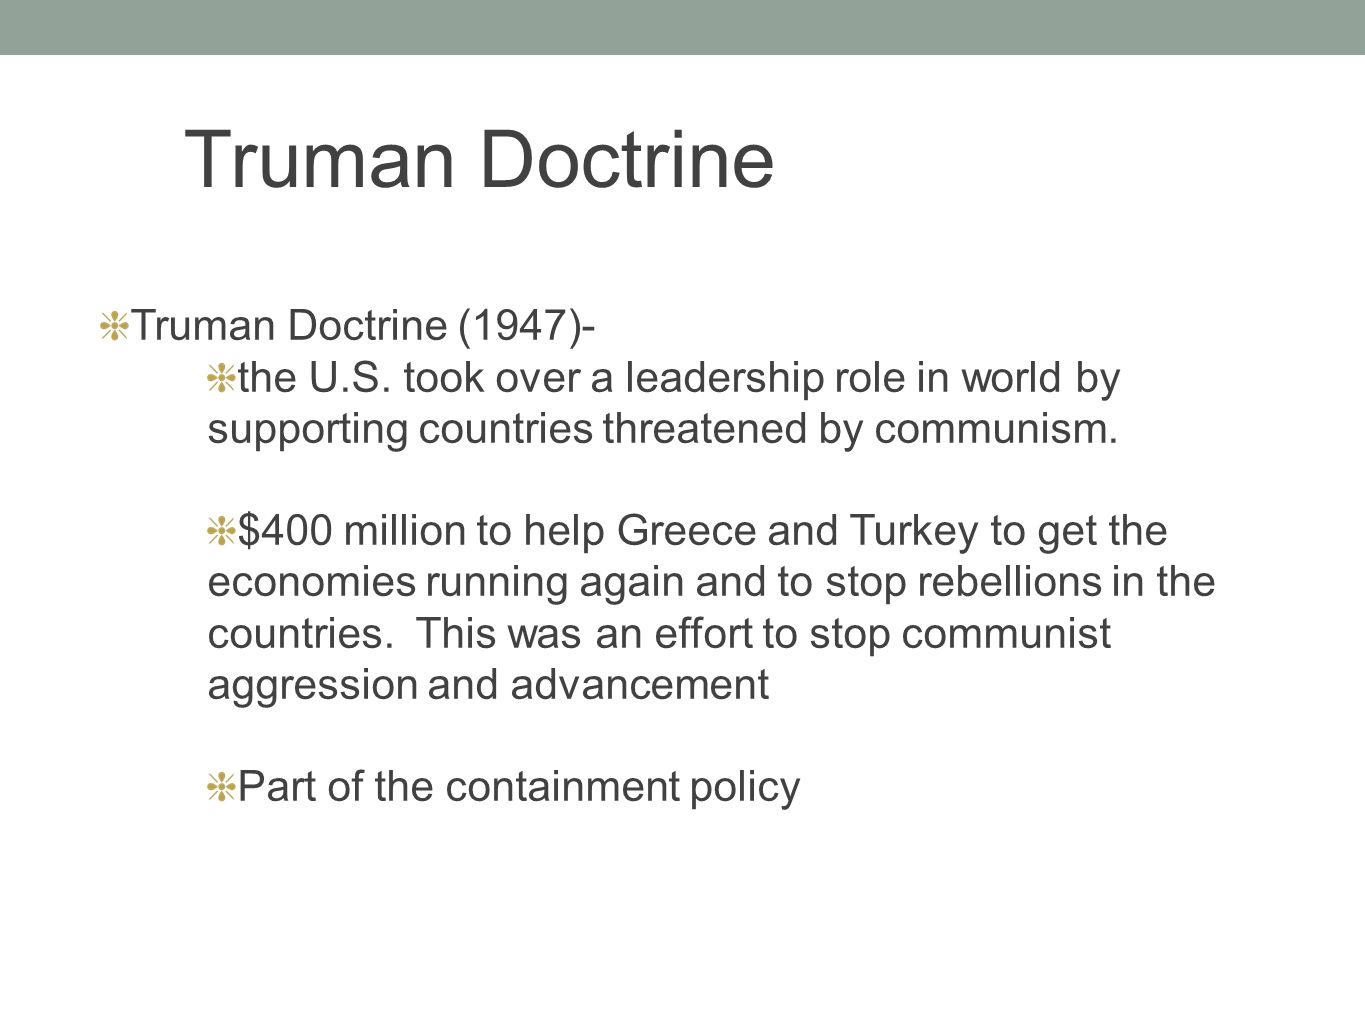 Truman Doctrine (1947)- the U.S. took over a leadership role in world by supporting countries threatened by communism. $400 million to help Greece and